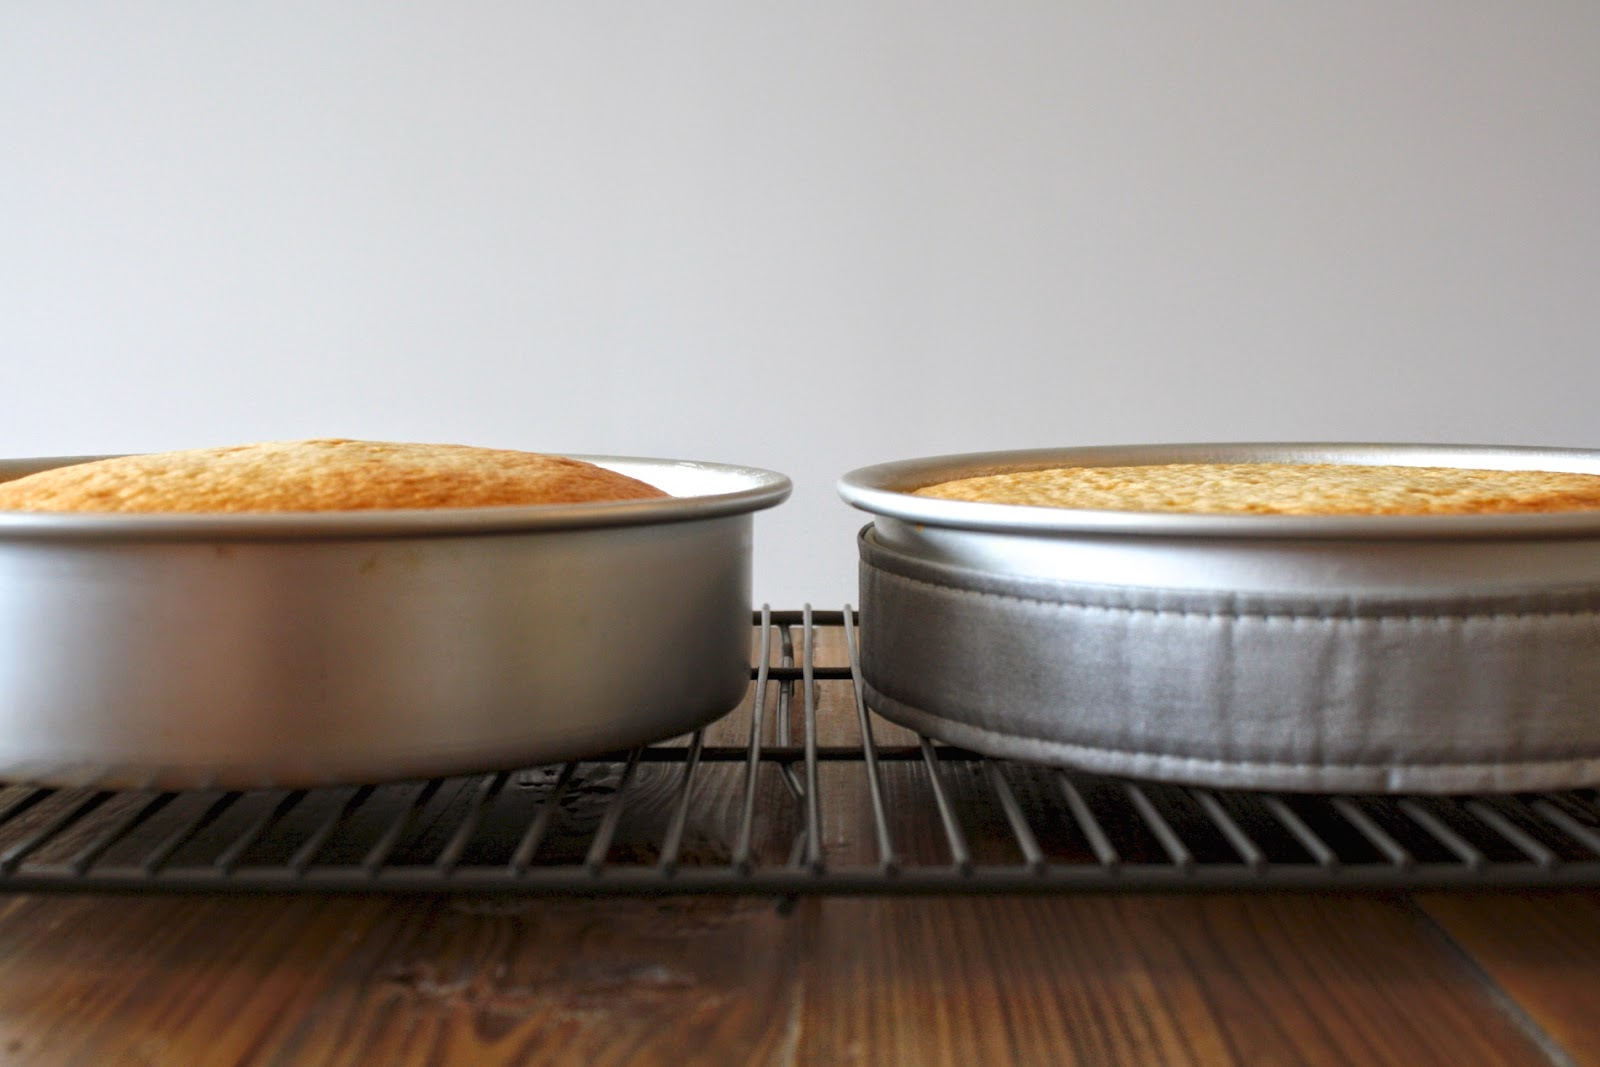 Baked cakes showing difference in pans when using evenbake strip